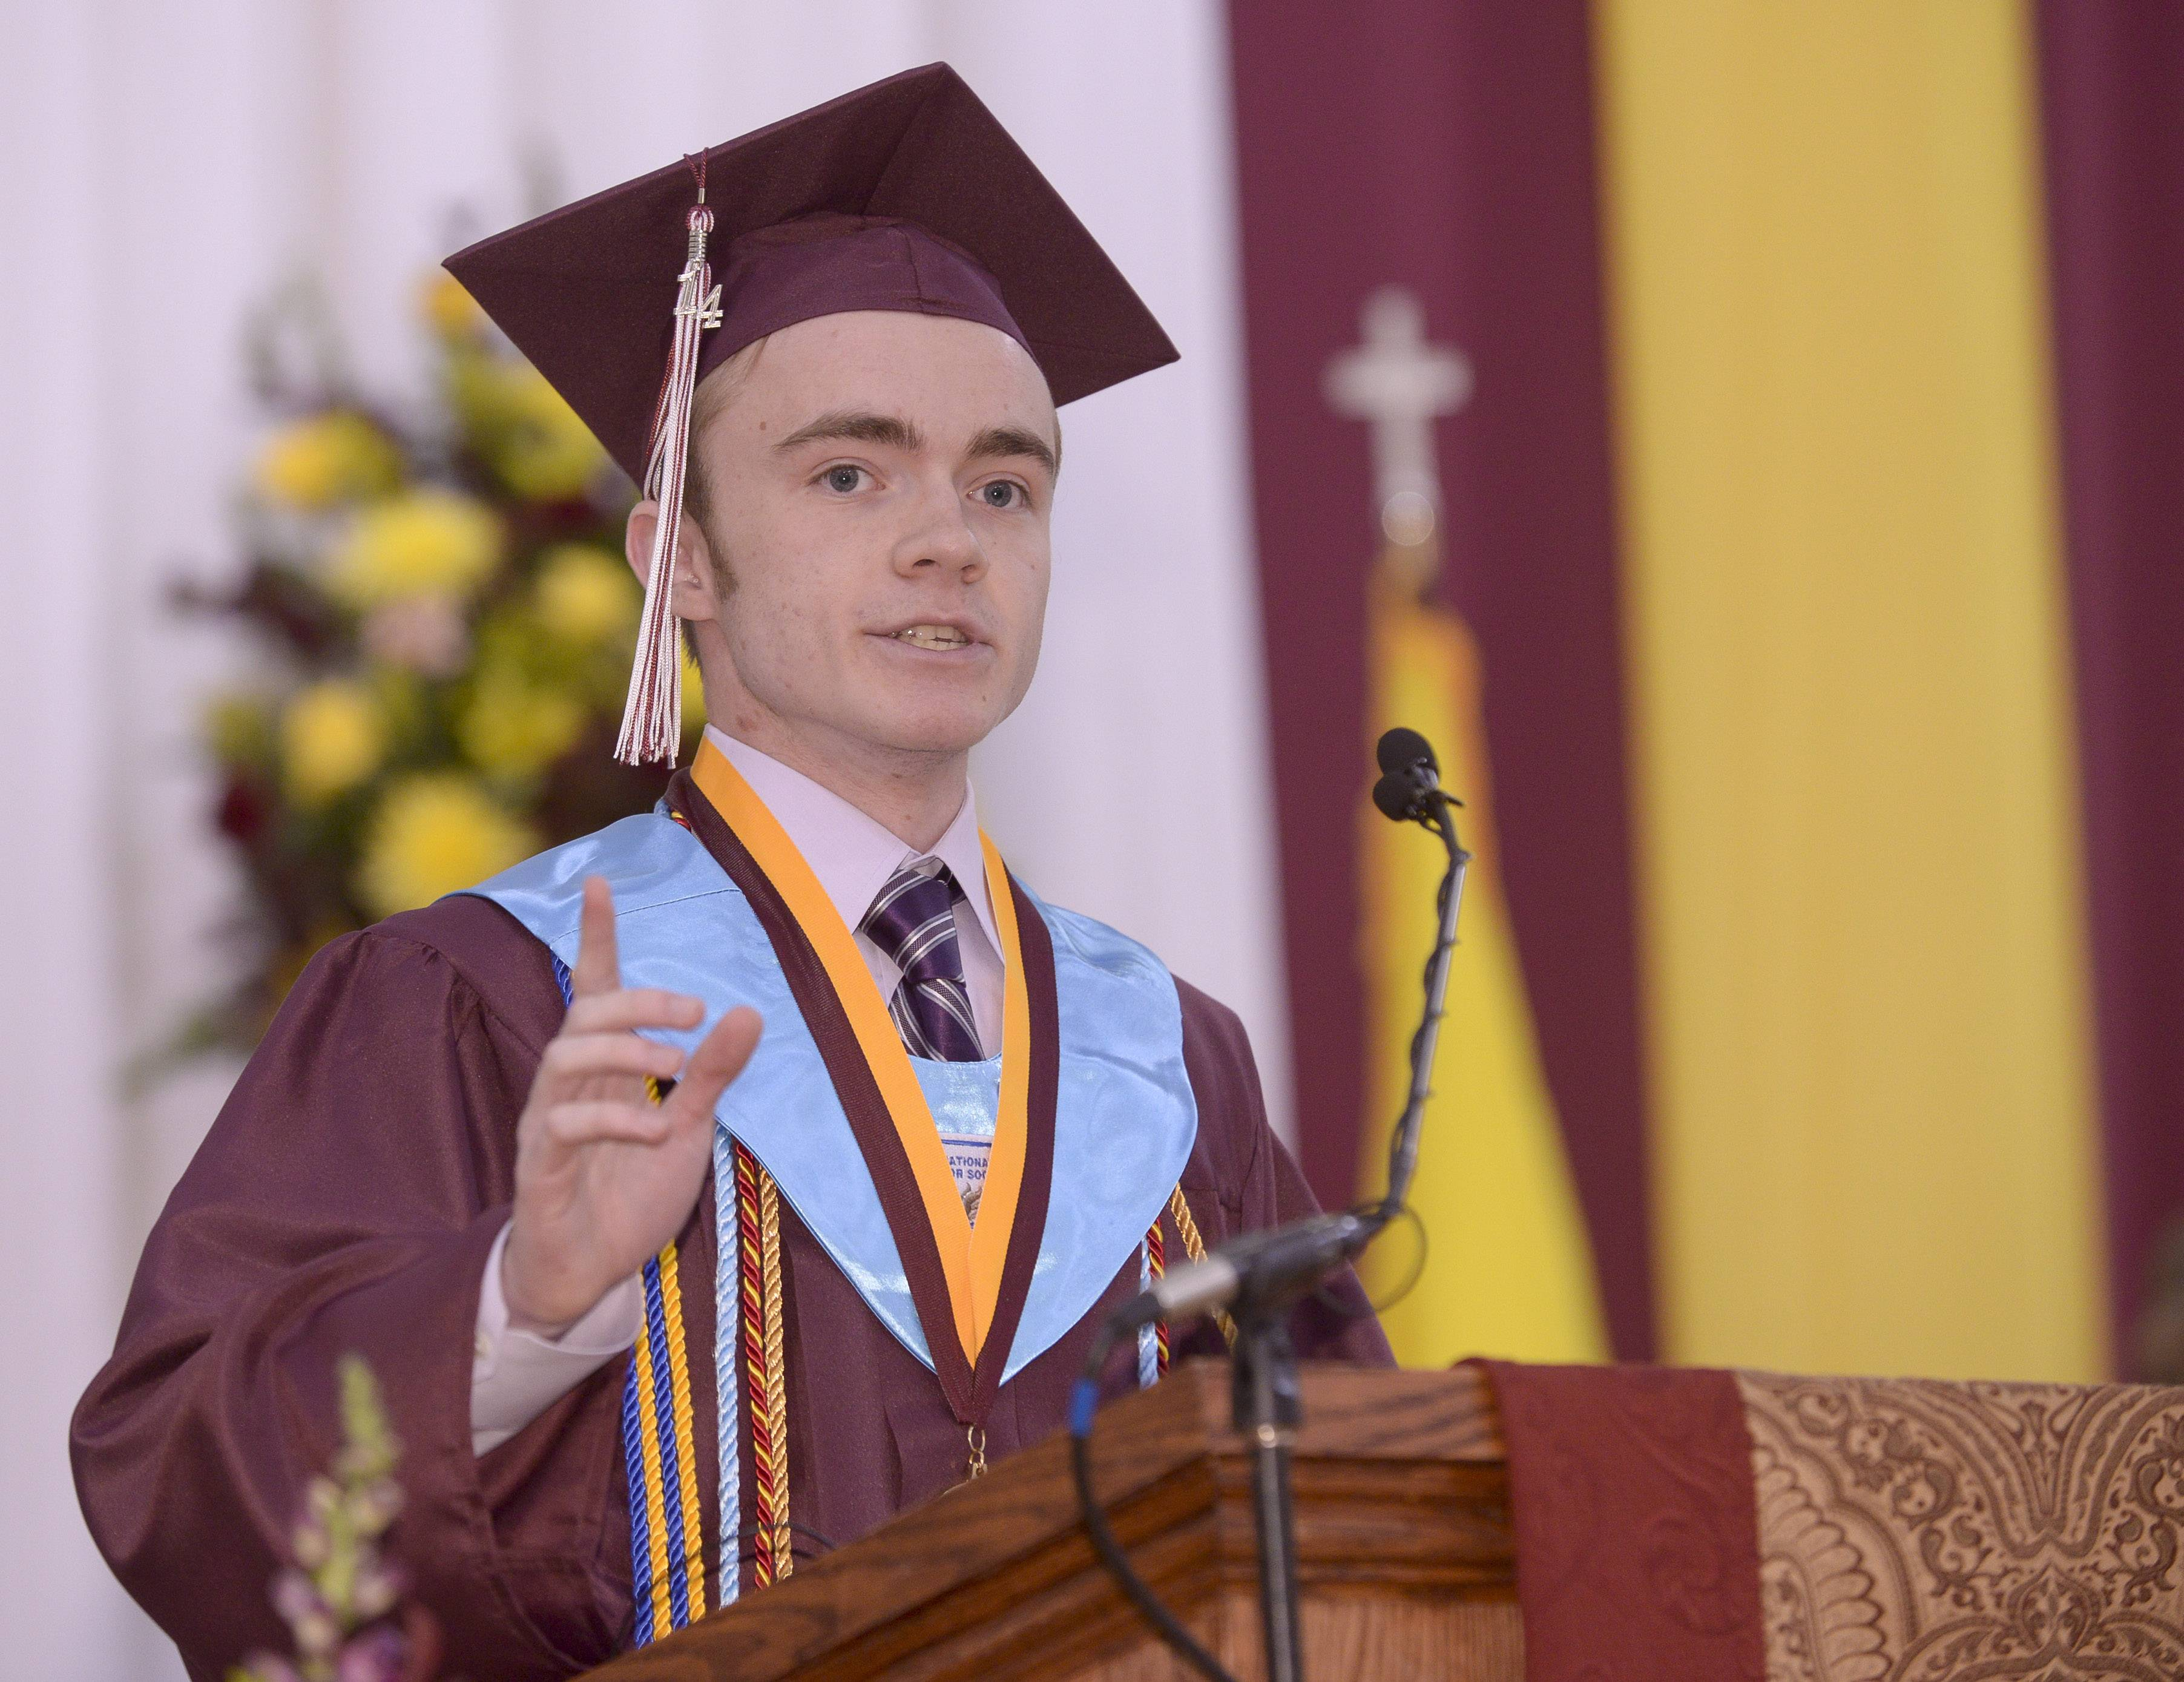 Valedictorian Gabriel Lynch speaks during the Montini Catholic High School graduation Sunday, May 18, at Montini in Lombard.